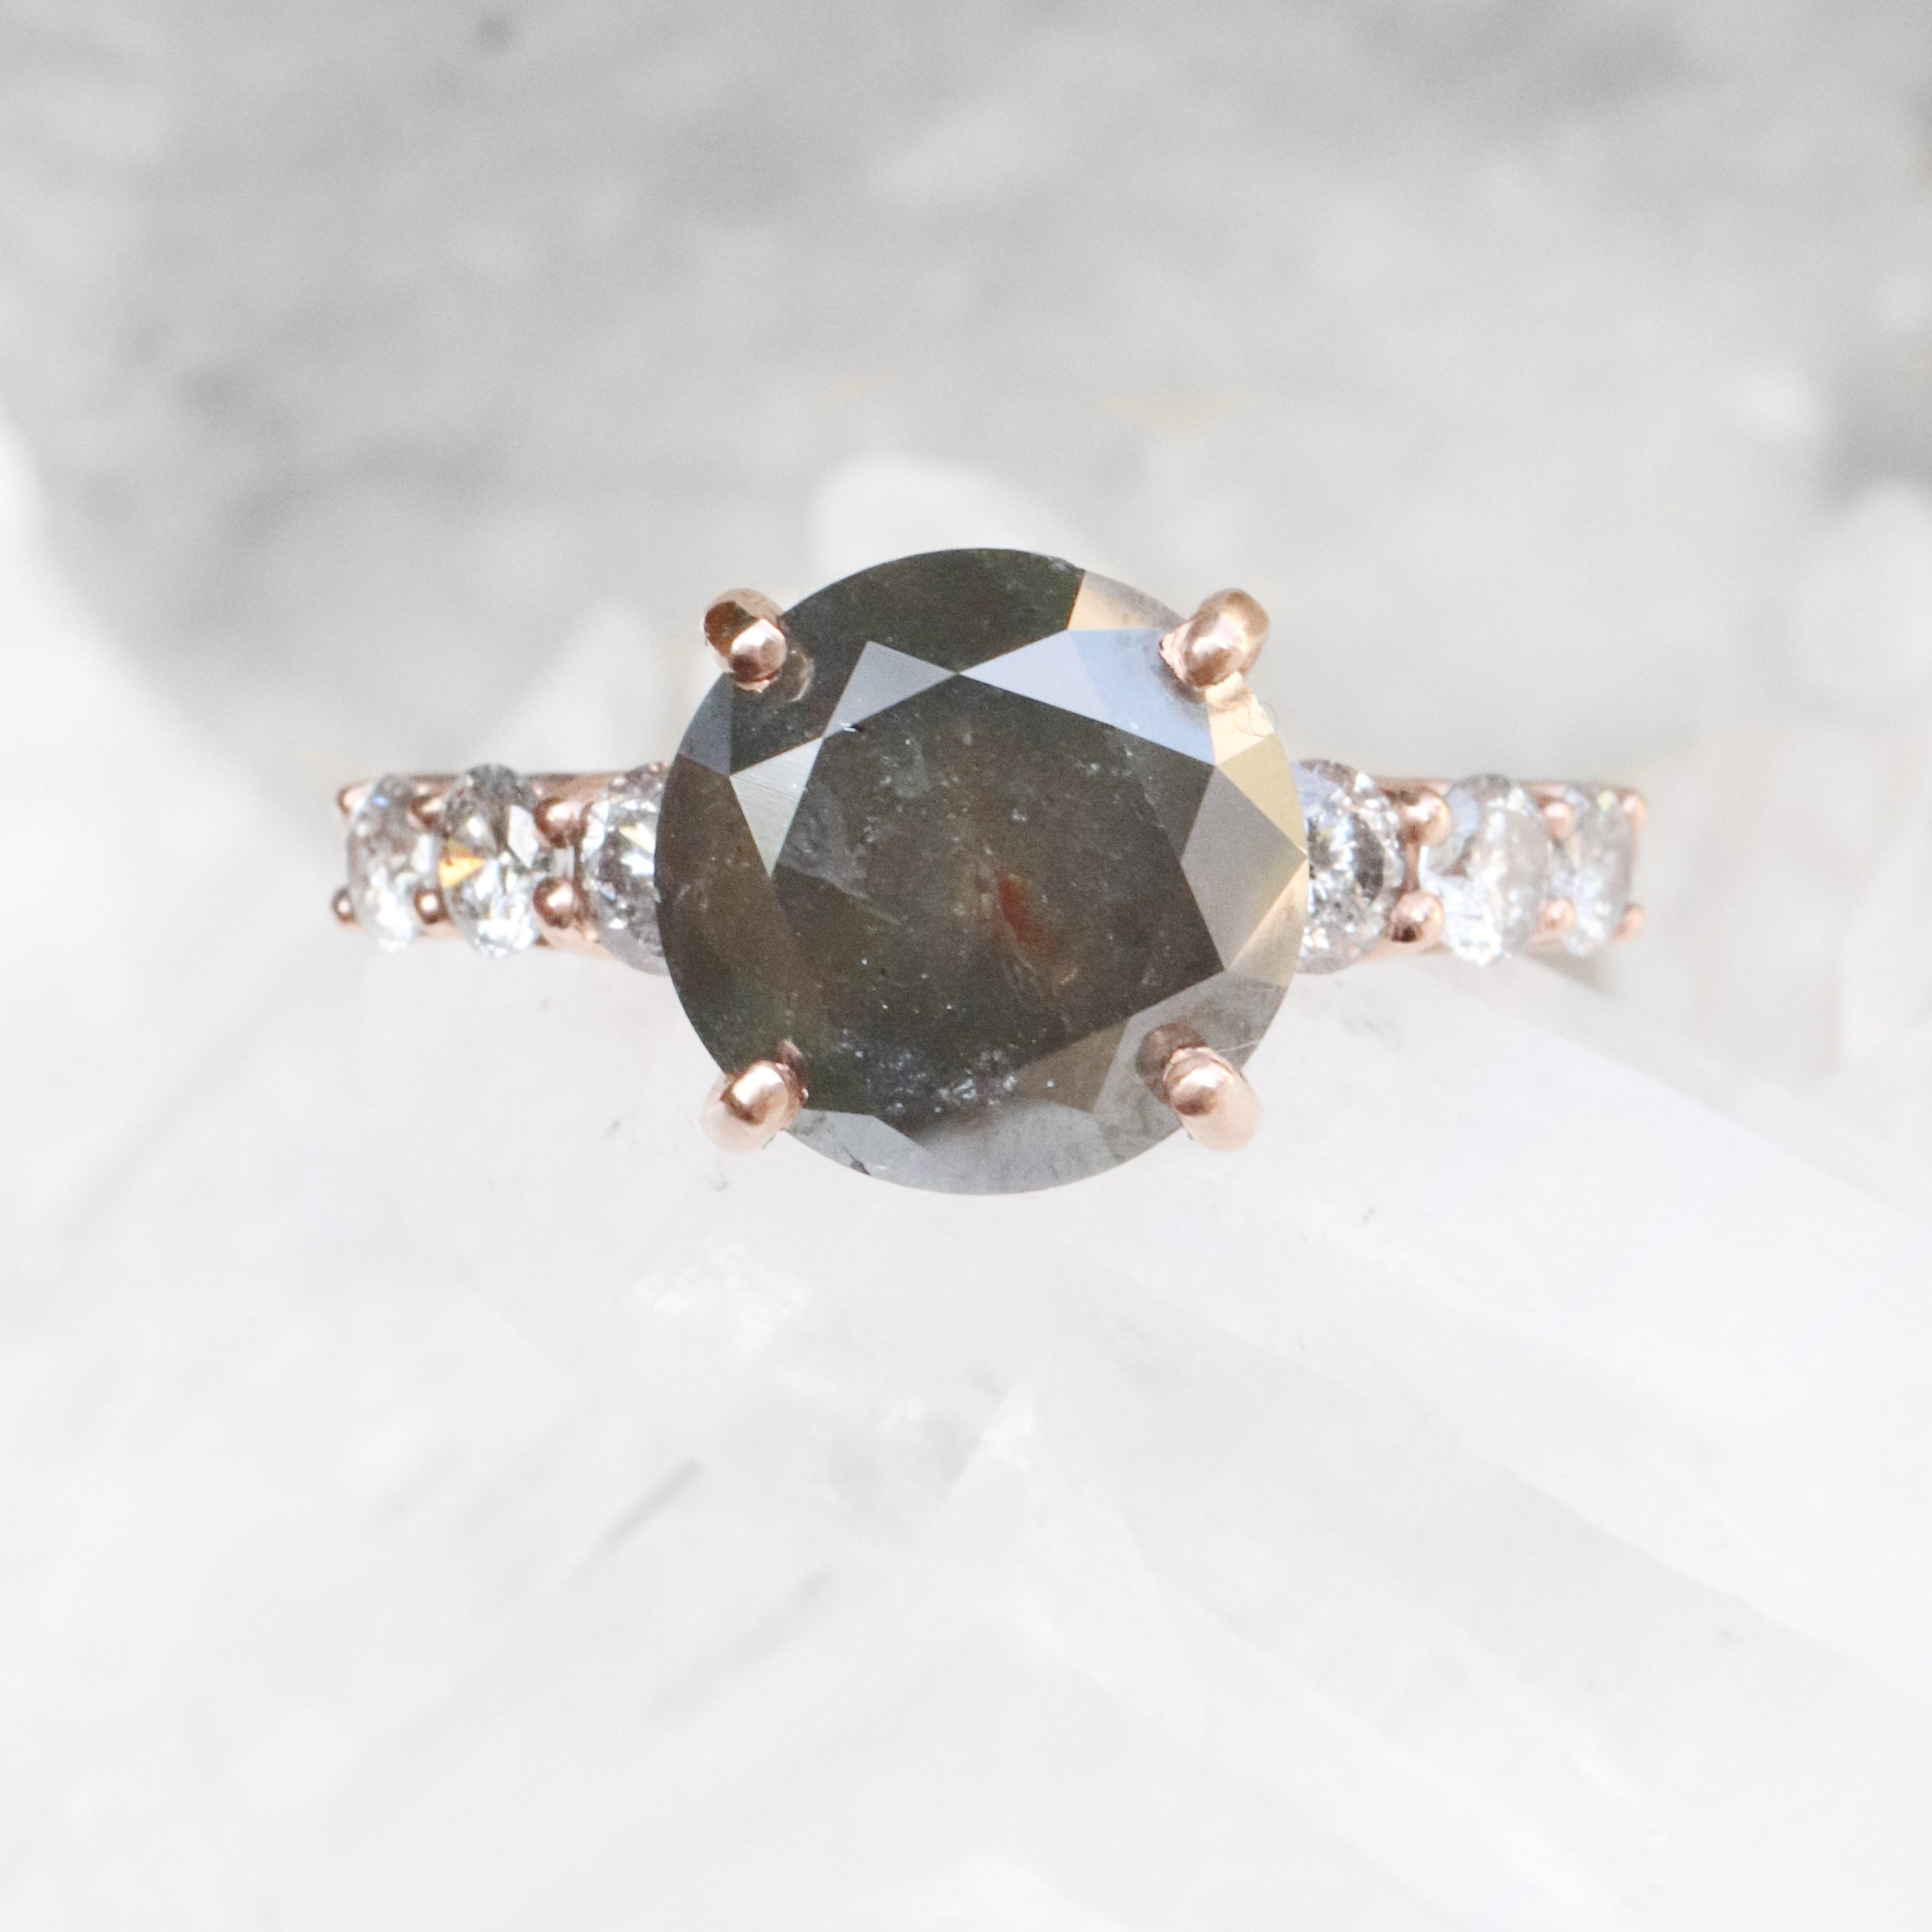 Nina Ring with a 4.6 carat Celestial Diamond + Celestial Accents in 10k Rose Gold - Ready to Size and Ship - Salt & Pepper Celestial Diamond Engagement Rings and Wedding Bands  by Midwinter Co.